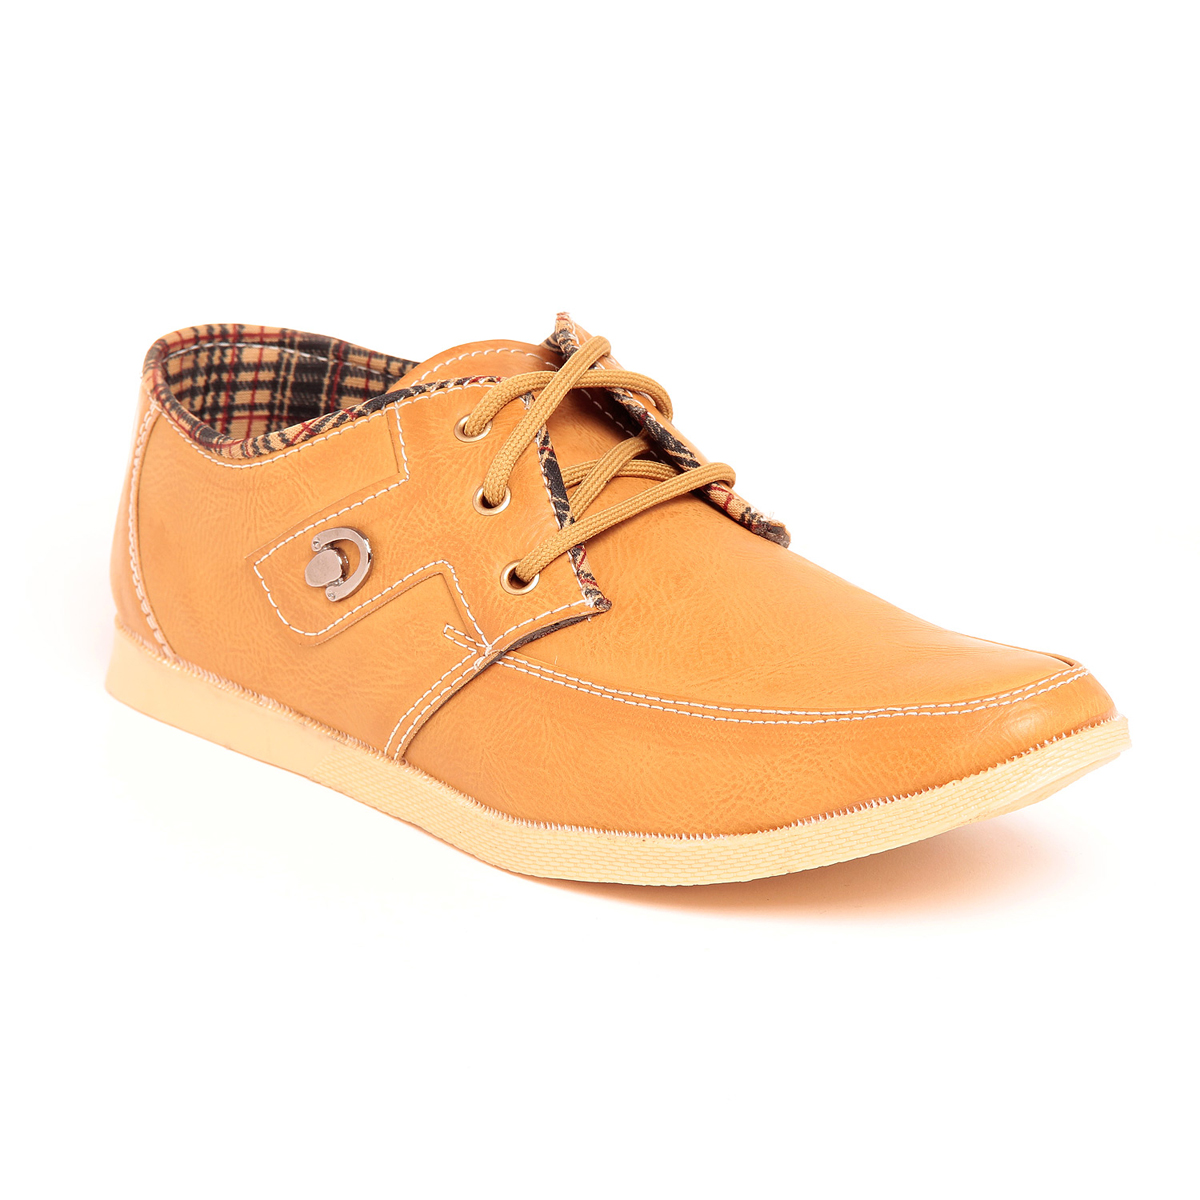 buy foot n style italian leather casual shoes fs274